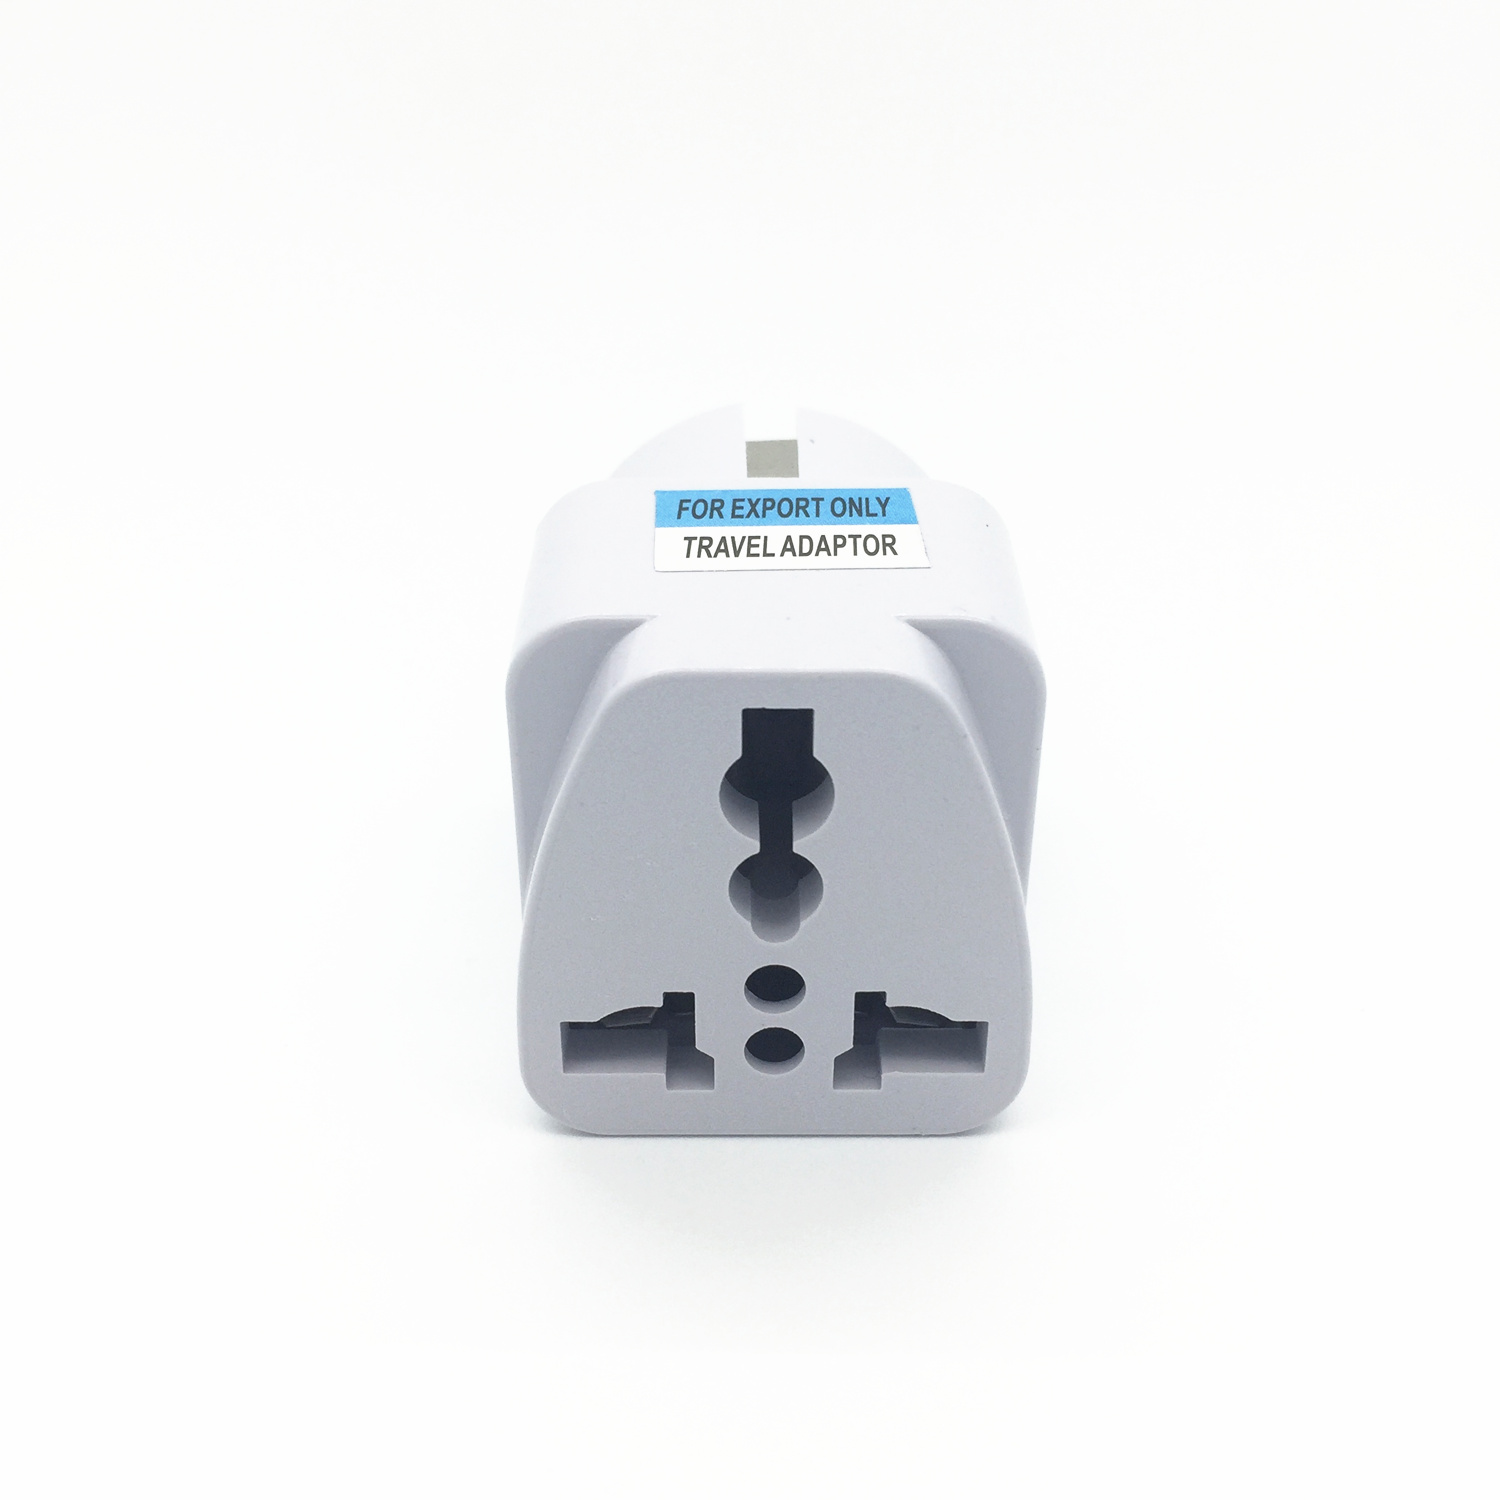 US $1 29 32% OFF|Free Shipping Power Plug Travel Adapter Converts  Australian To Europe Bali India Germany More-in Phone Adapters & Converters  from